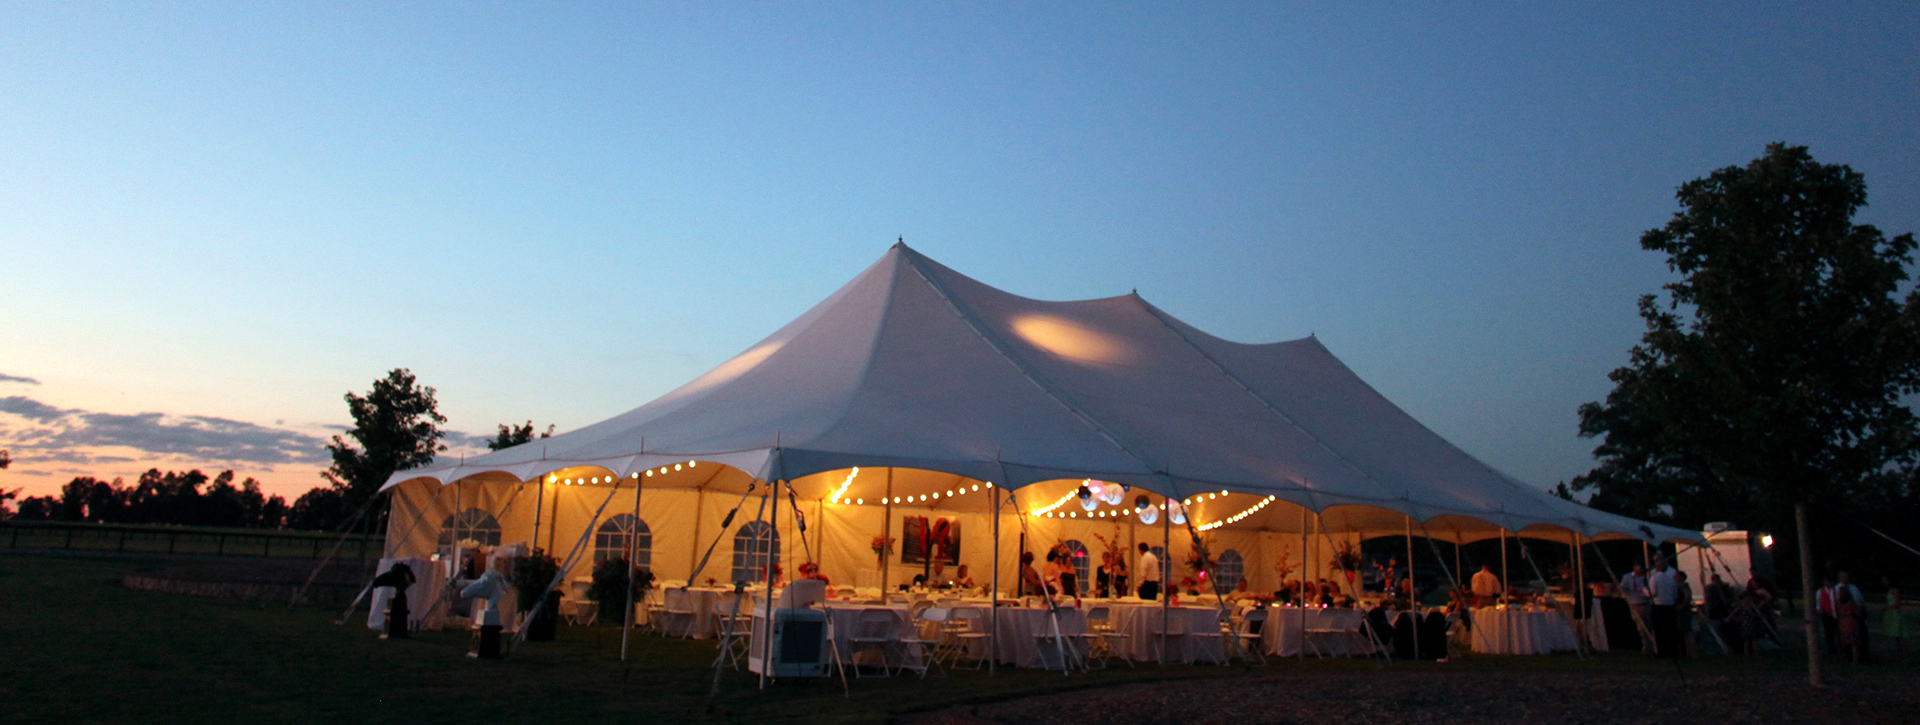 AllStar Tents and Events